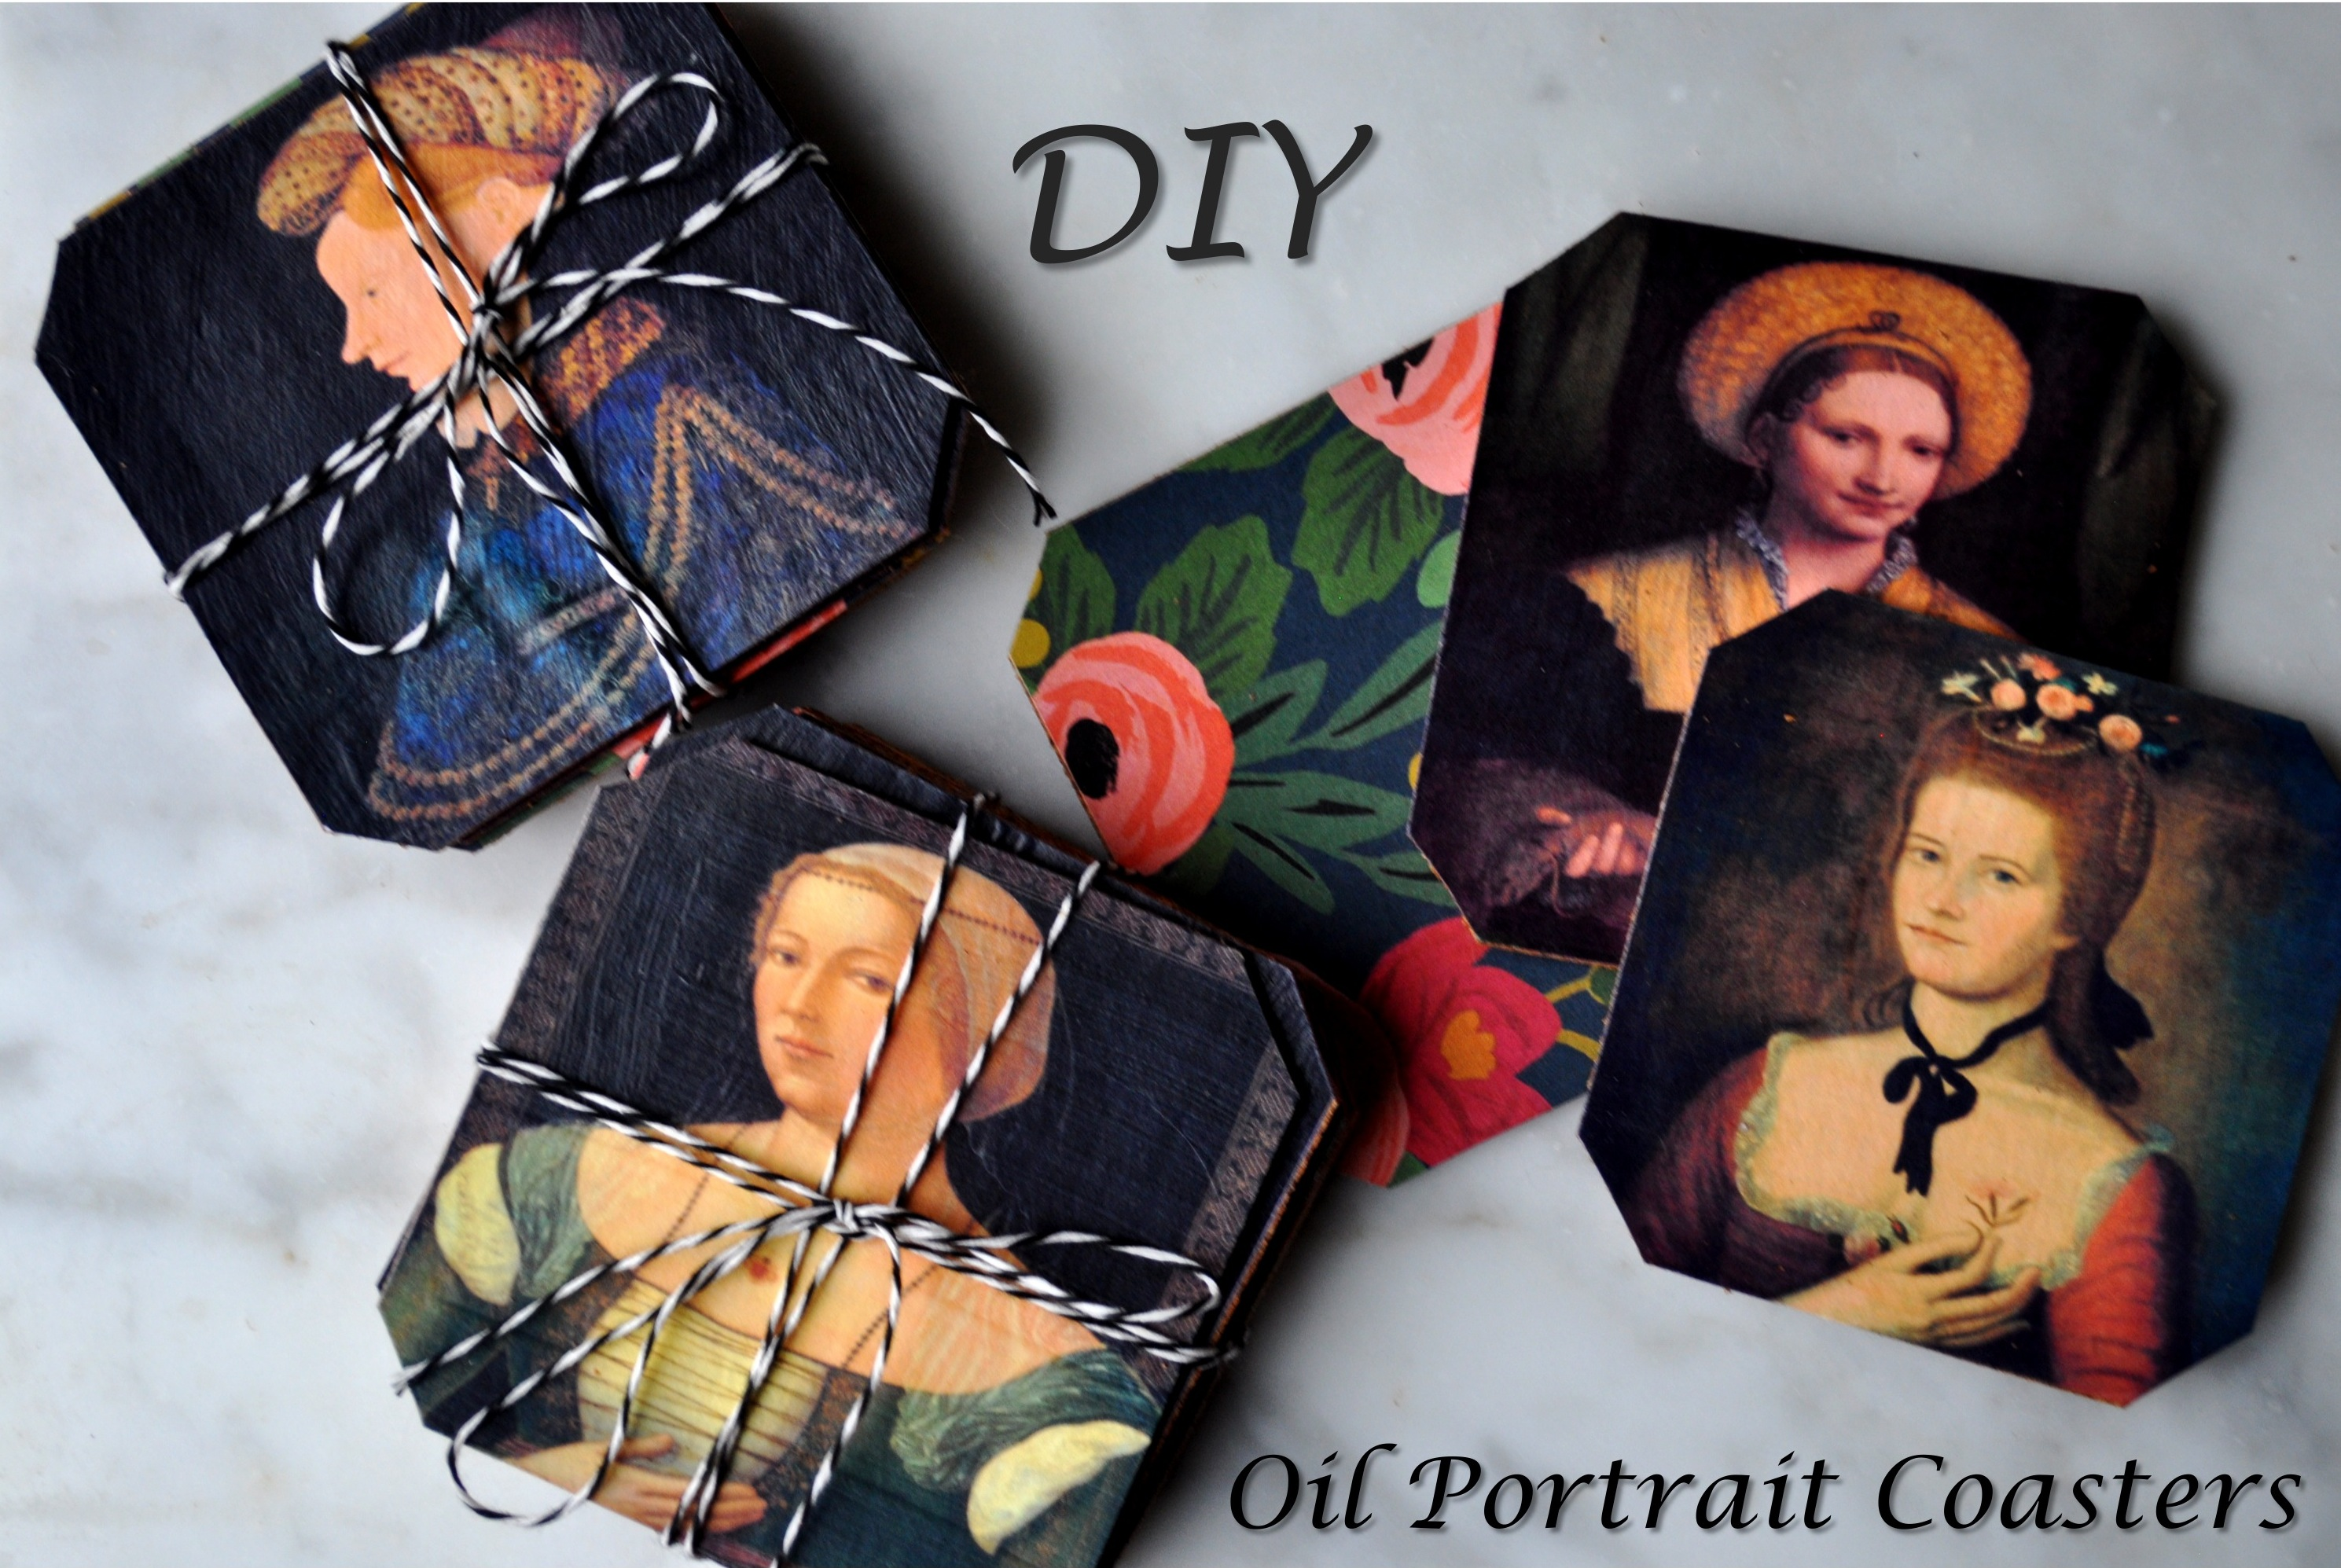 Red House West//Oil Portrait Coasters